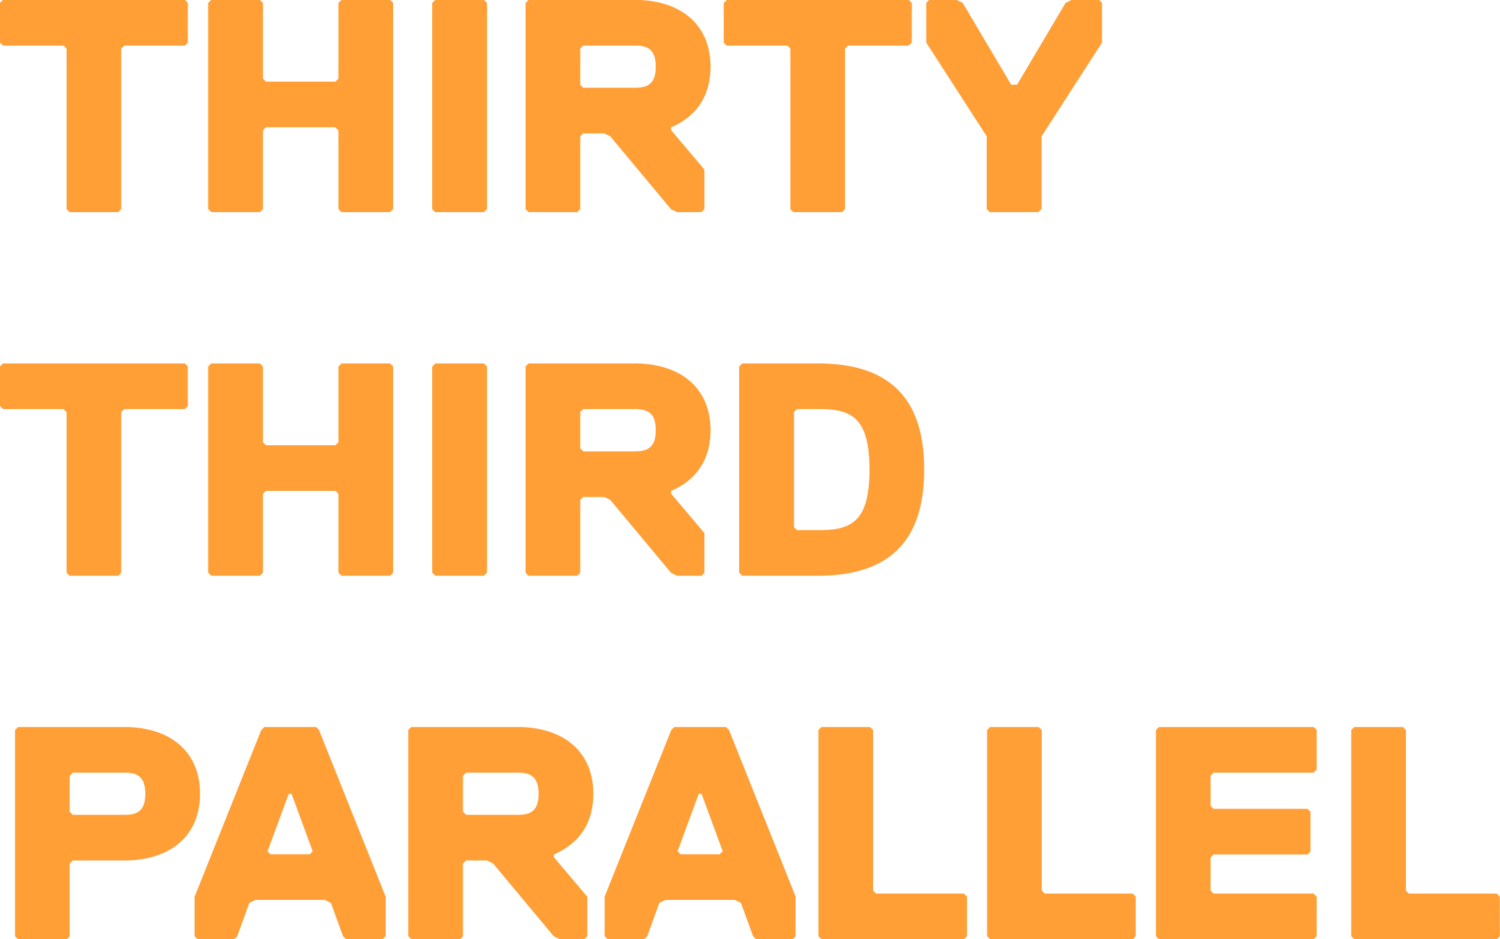 Thirty Third Parallel